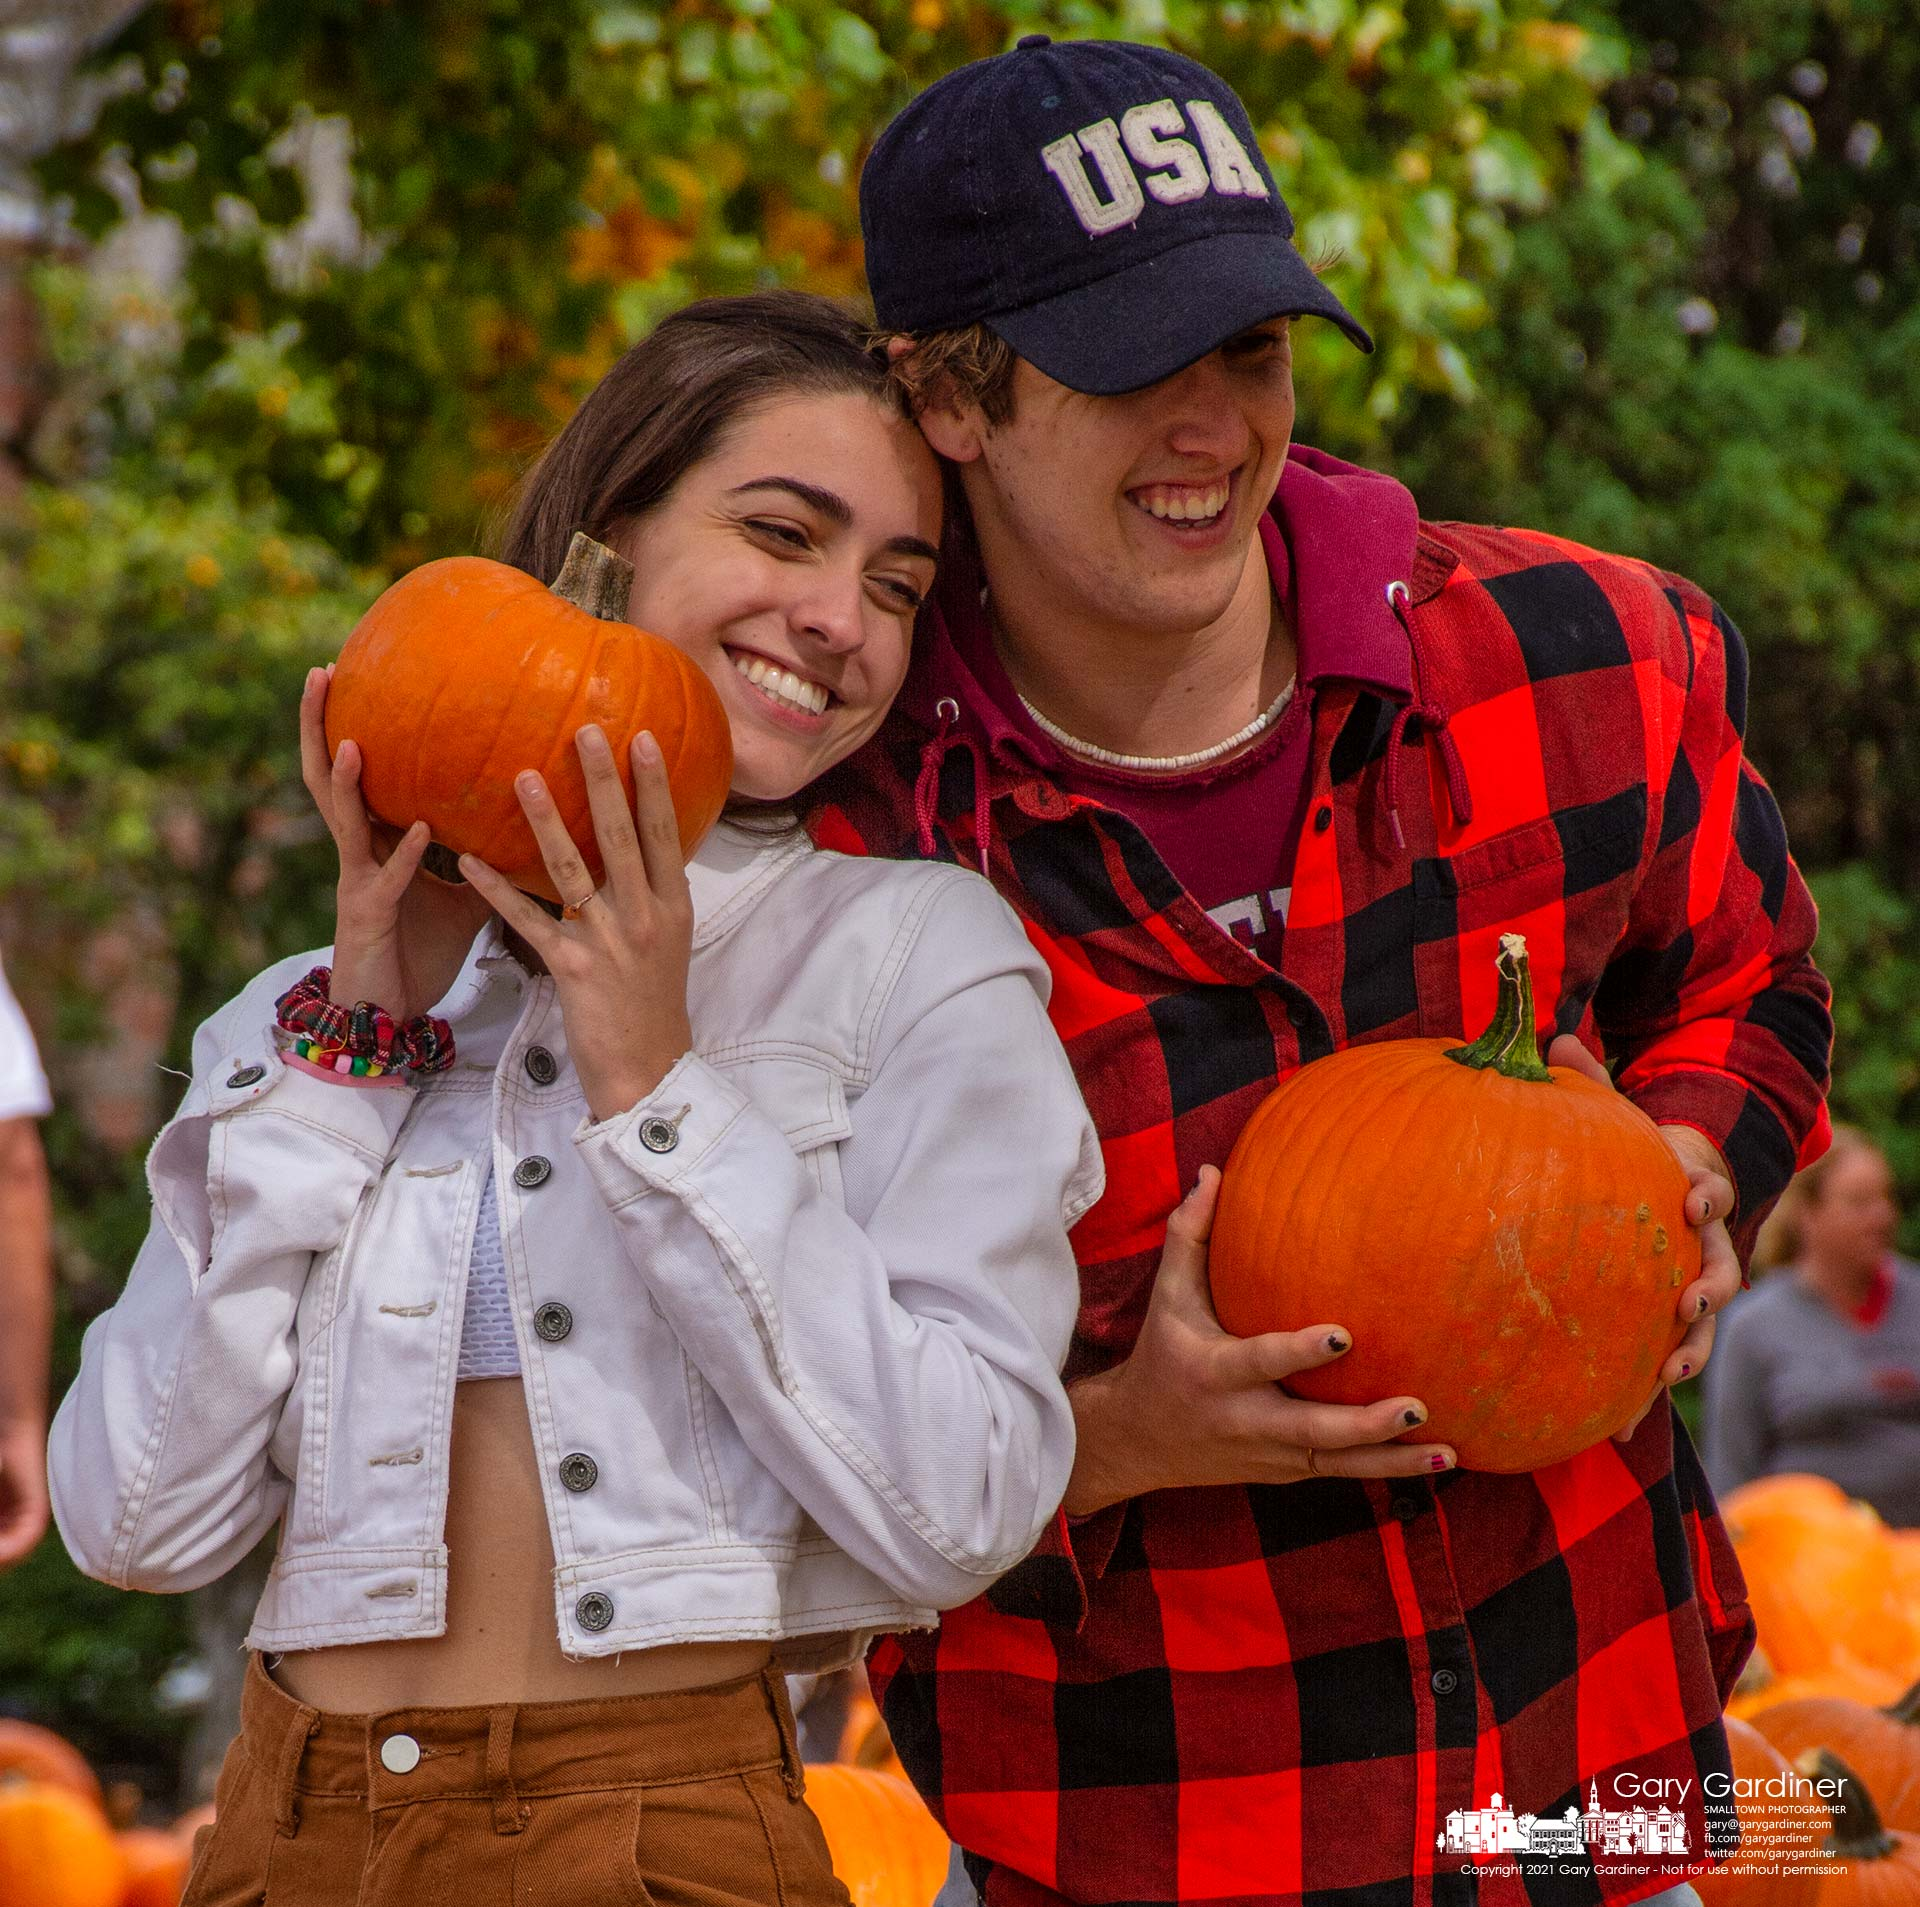 Otterbein students pause to record their pumpkin purchase from the Boy Scout Troop Pumpkin Patch in front of the Masonic Hall on South State Street in Westerville. My Final Photo for Oct. 2, 2021.